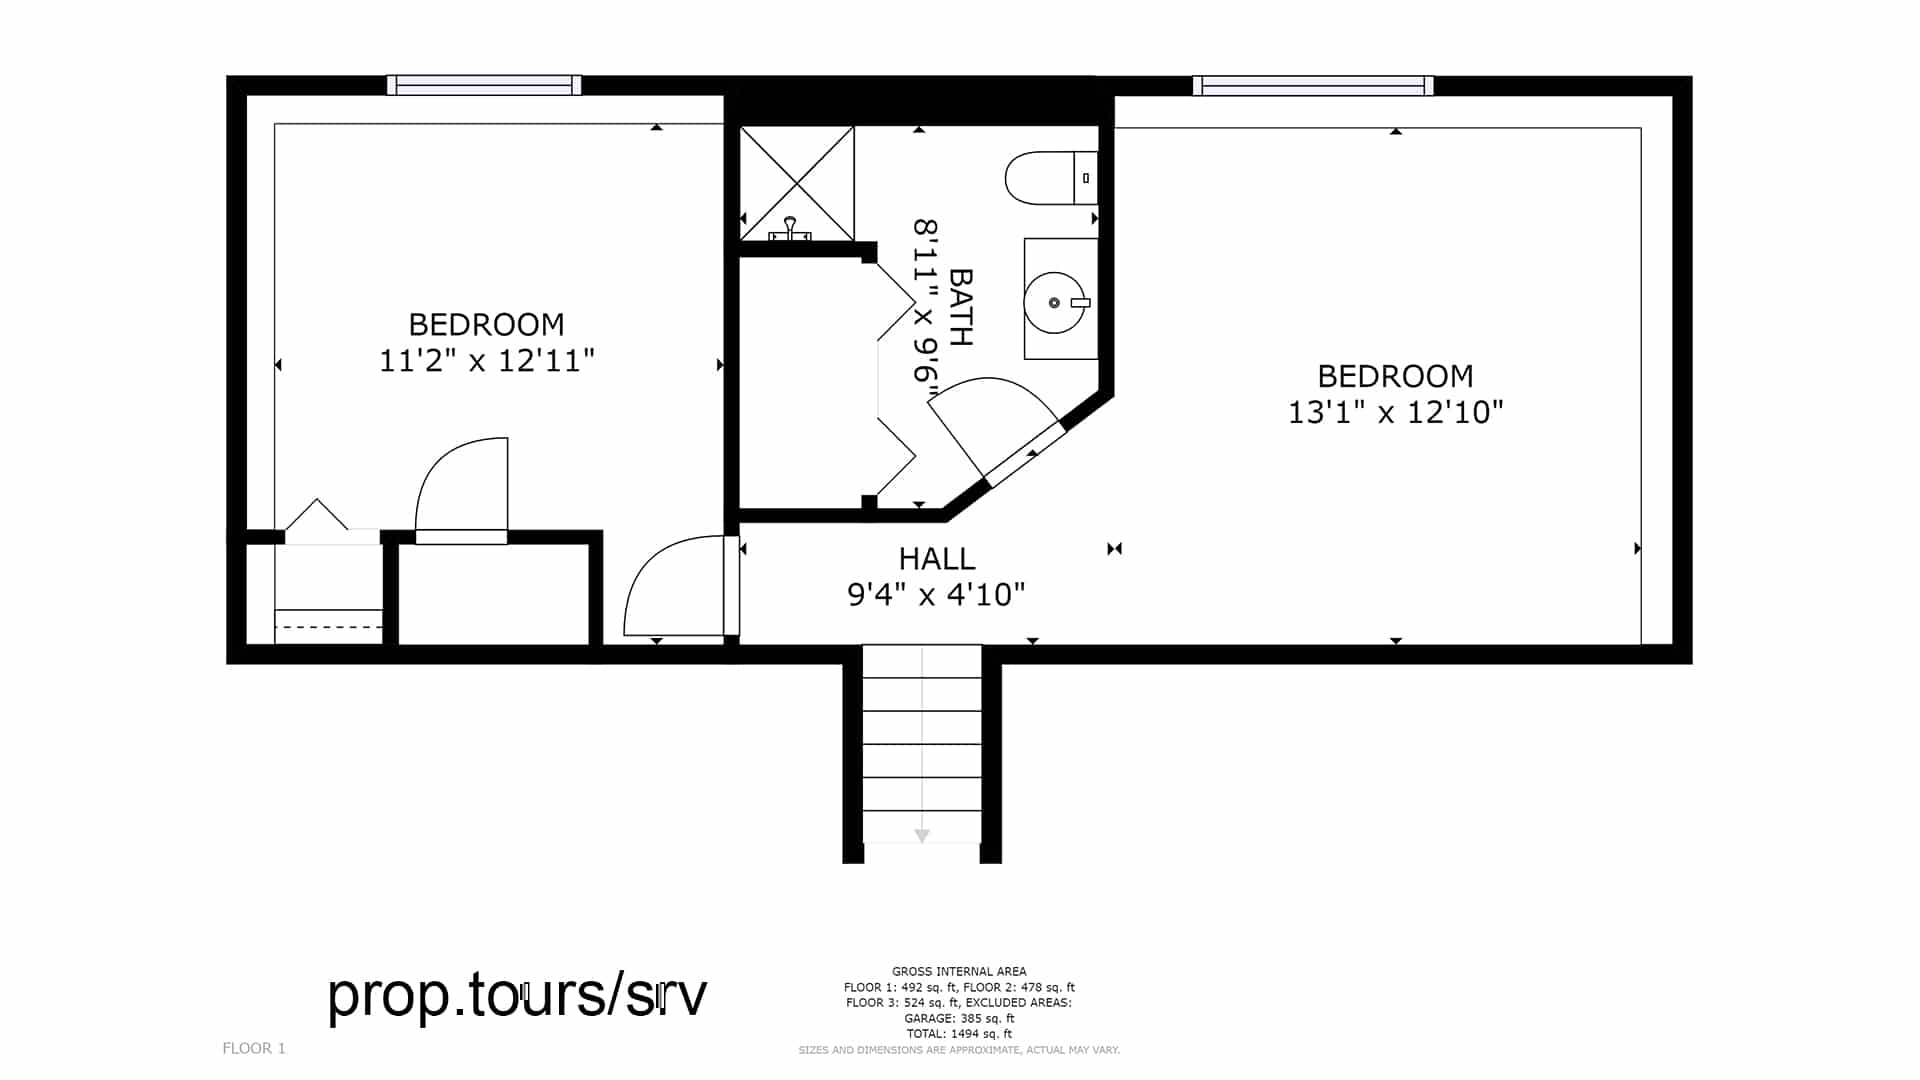 Lower floor plan drawing Brighton house for sale